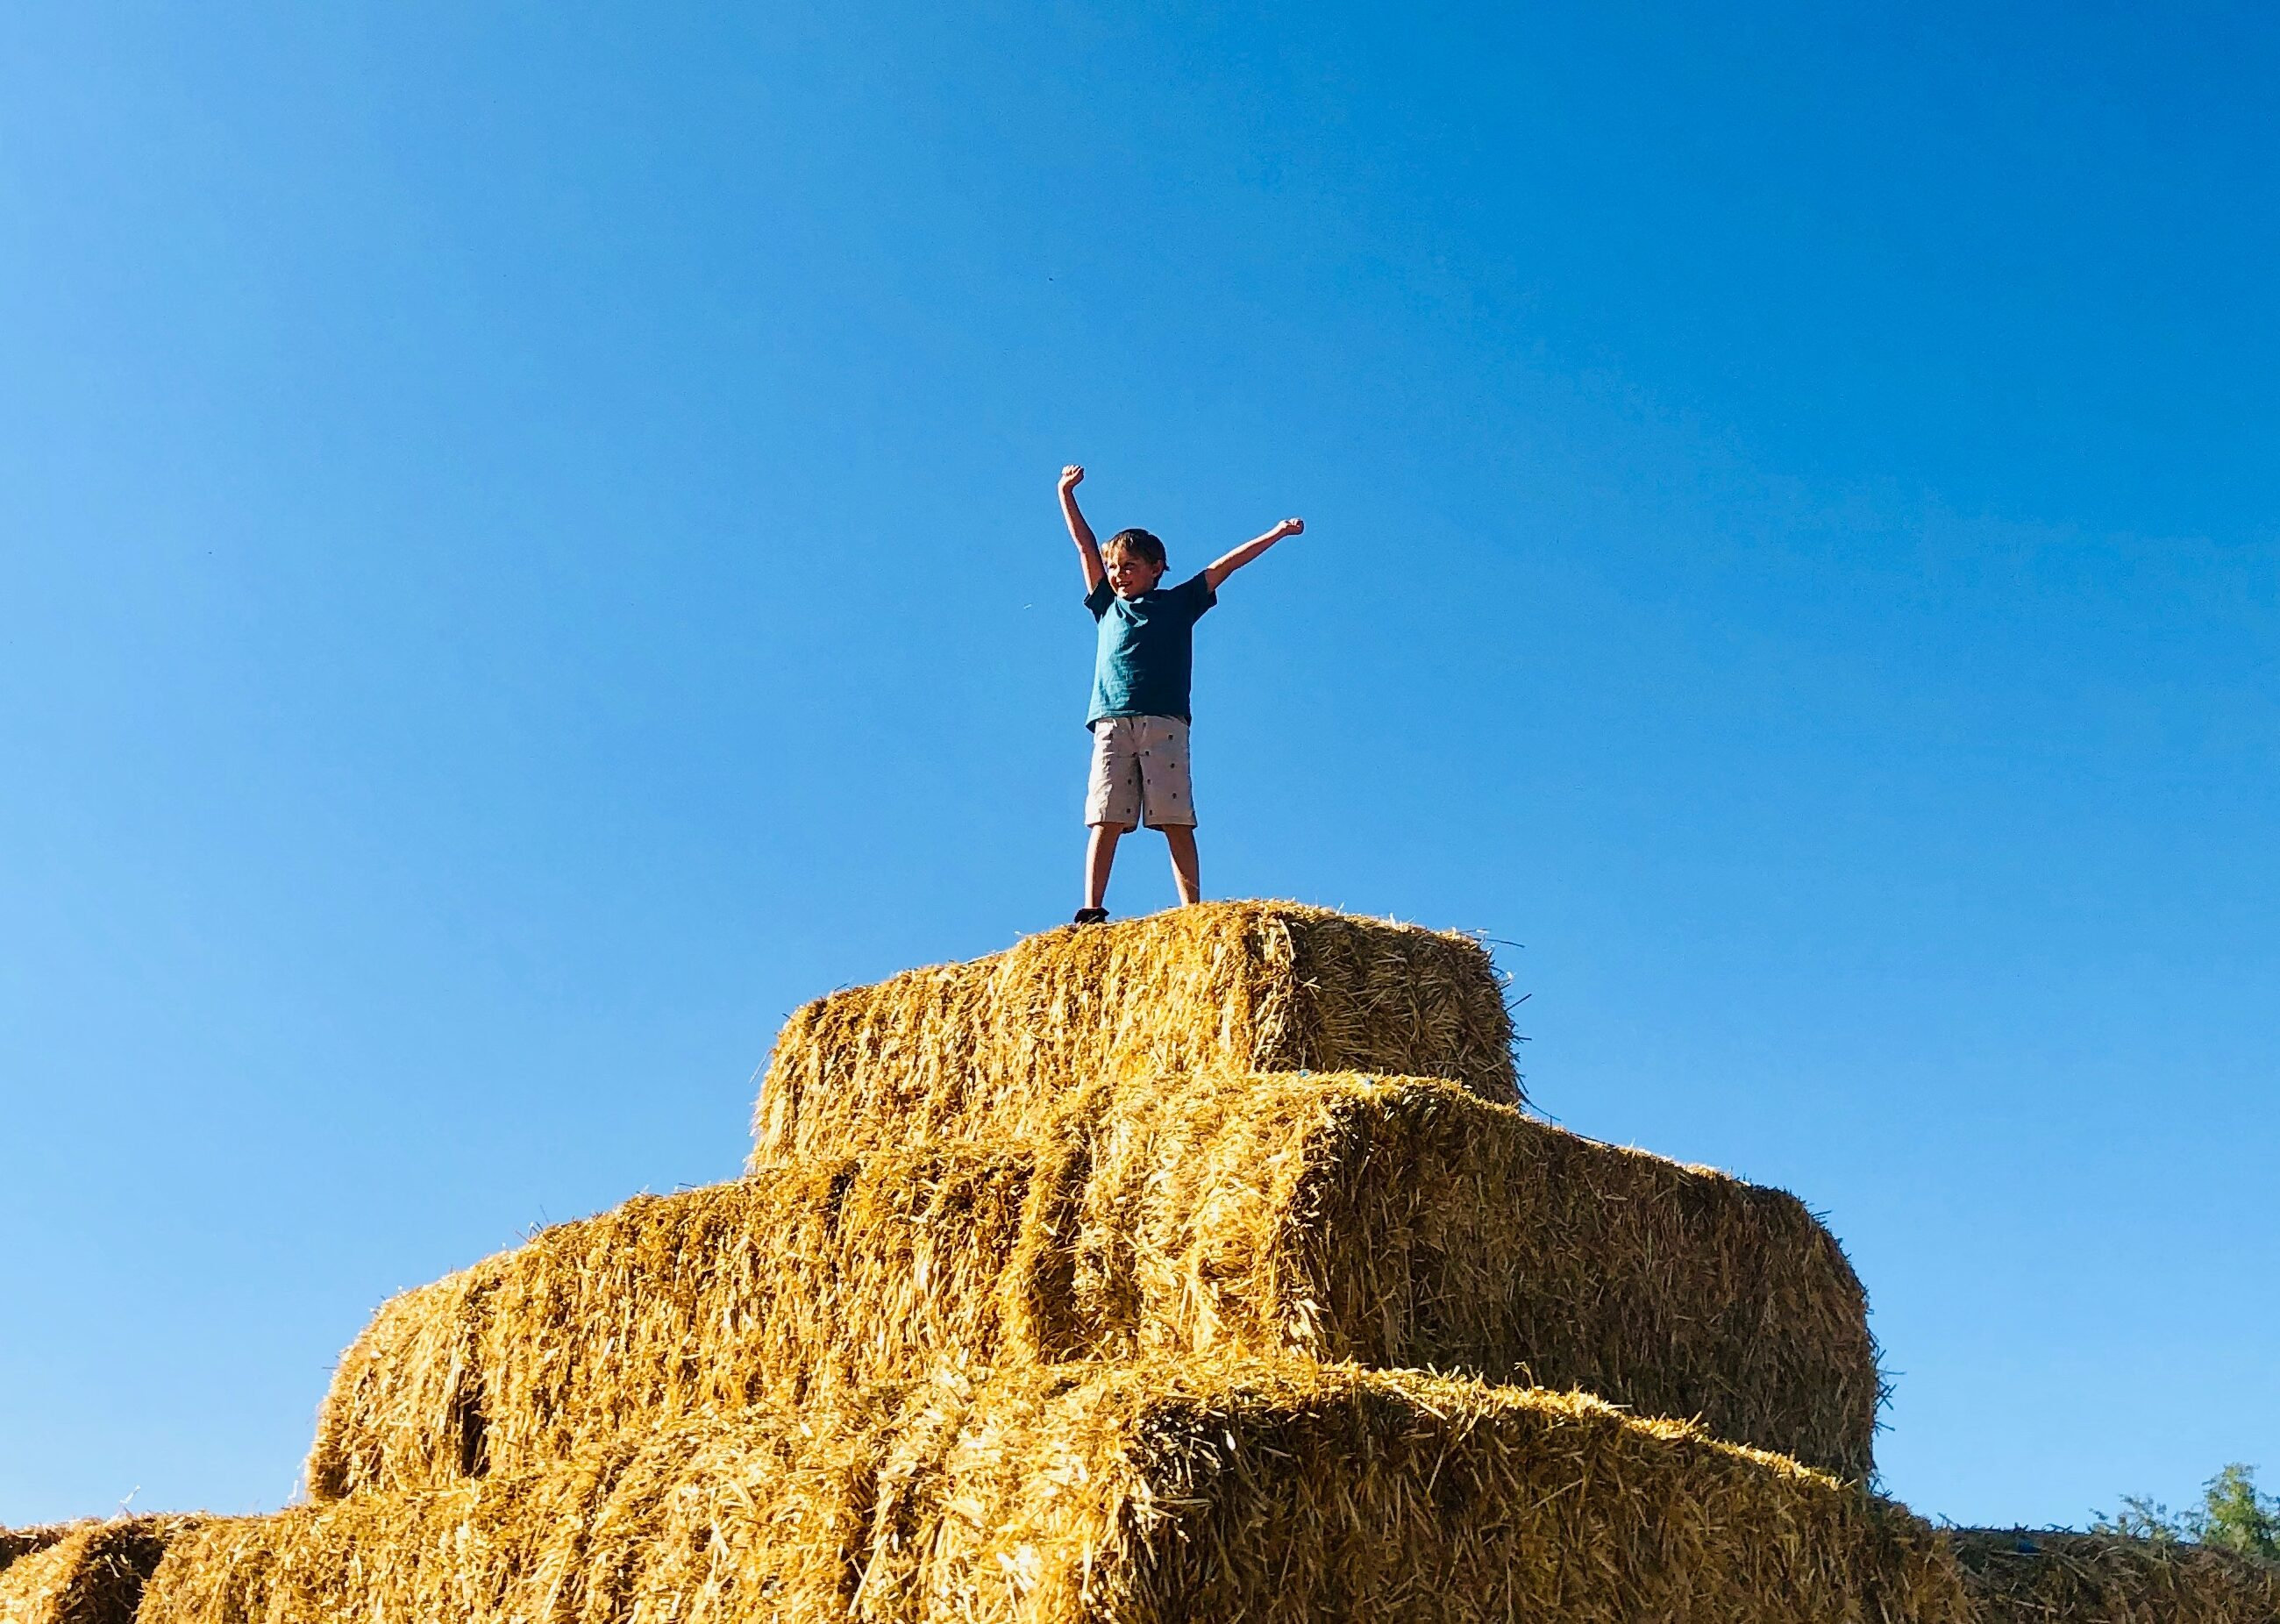 Giant Pyramid made of straw bales at Glen Ray's Corn Maze and Pumpkin Patchd